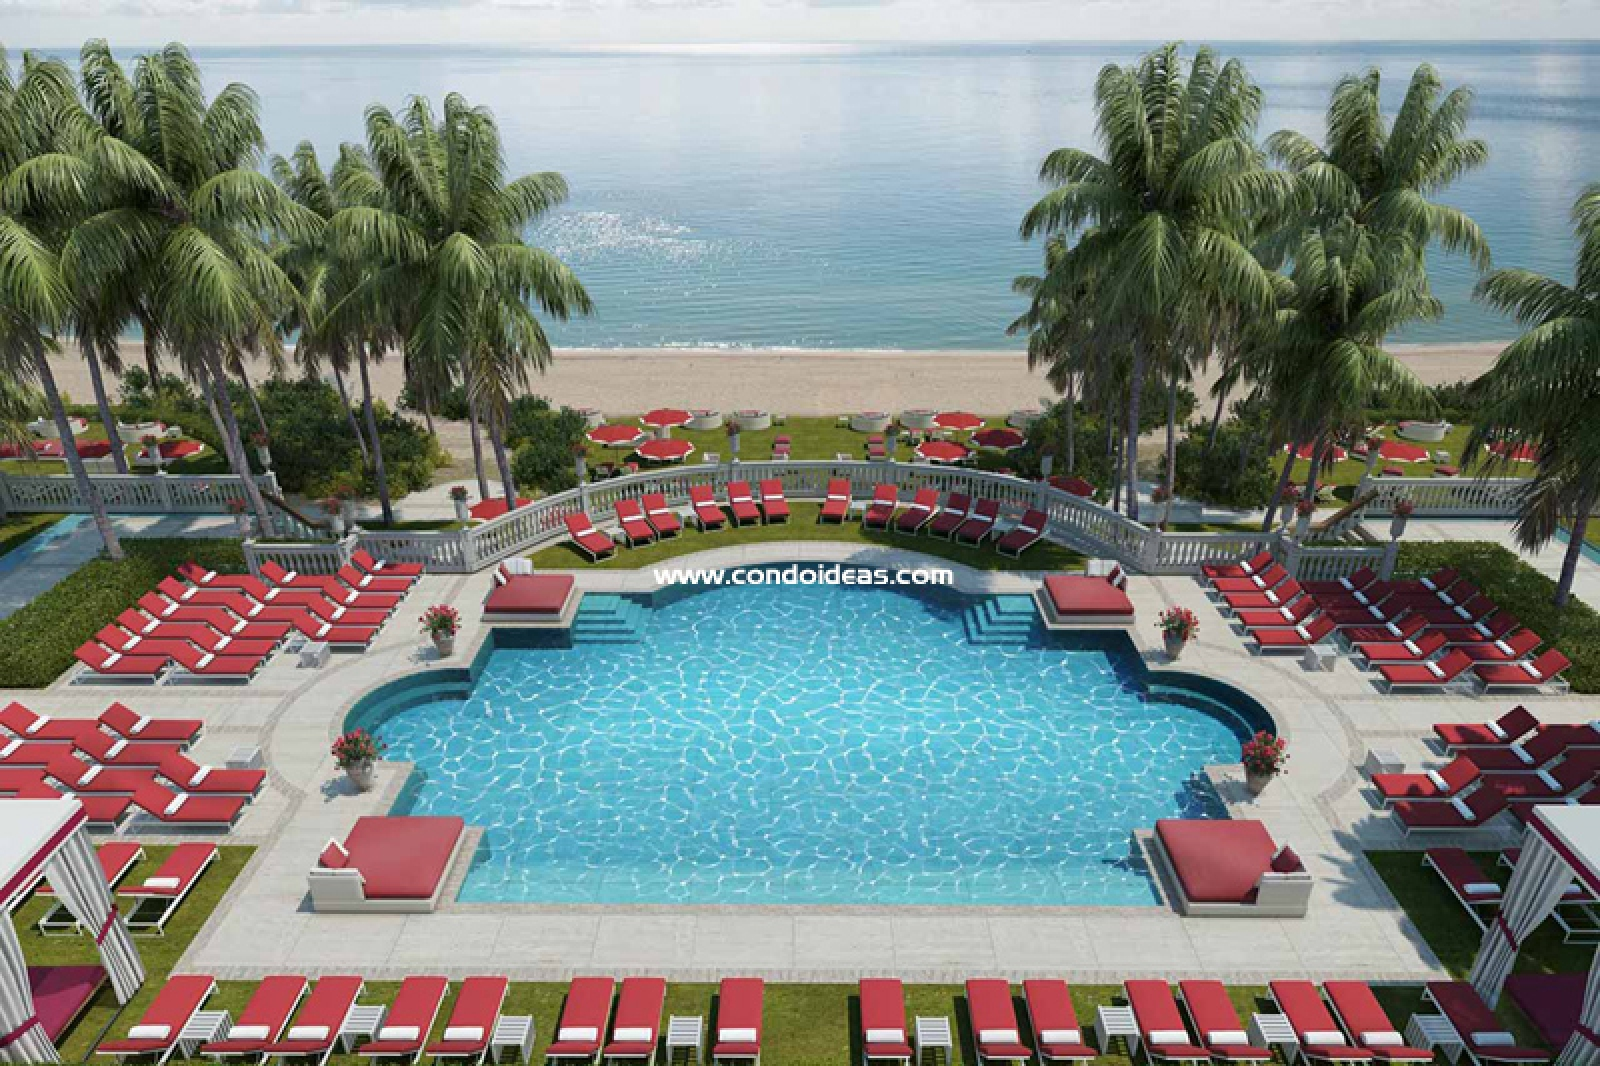 Estates at Acqualina condo